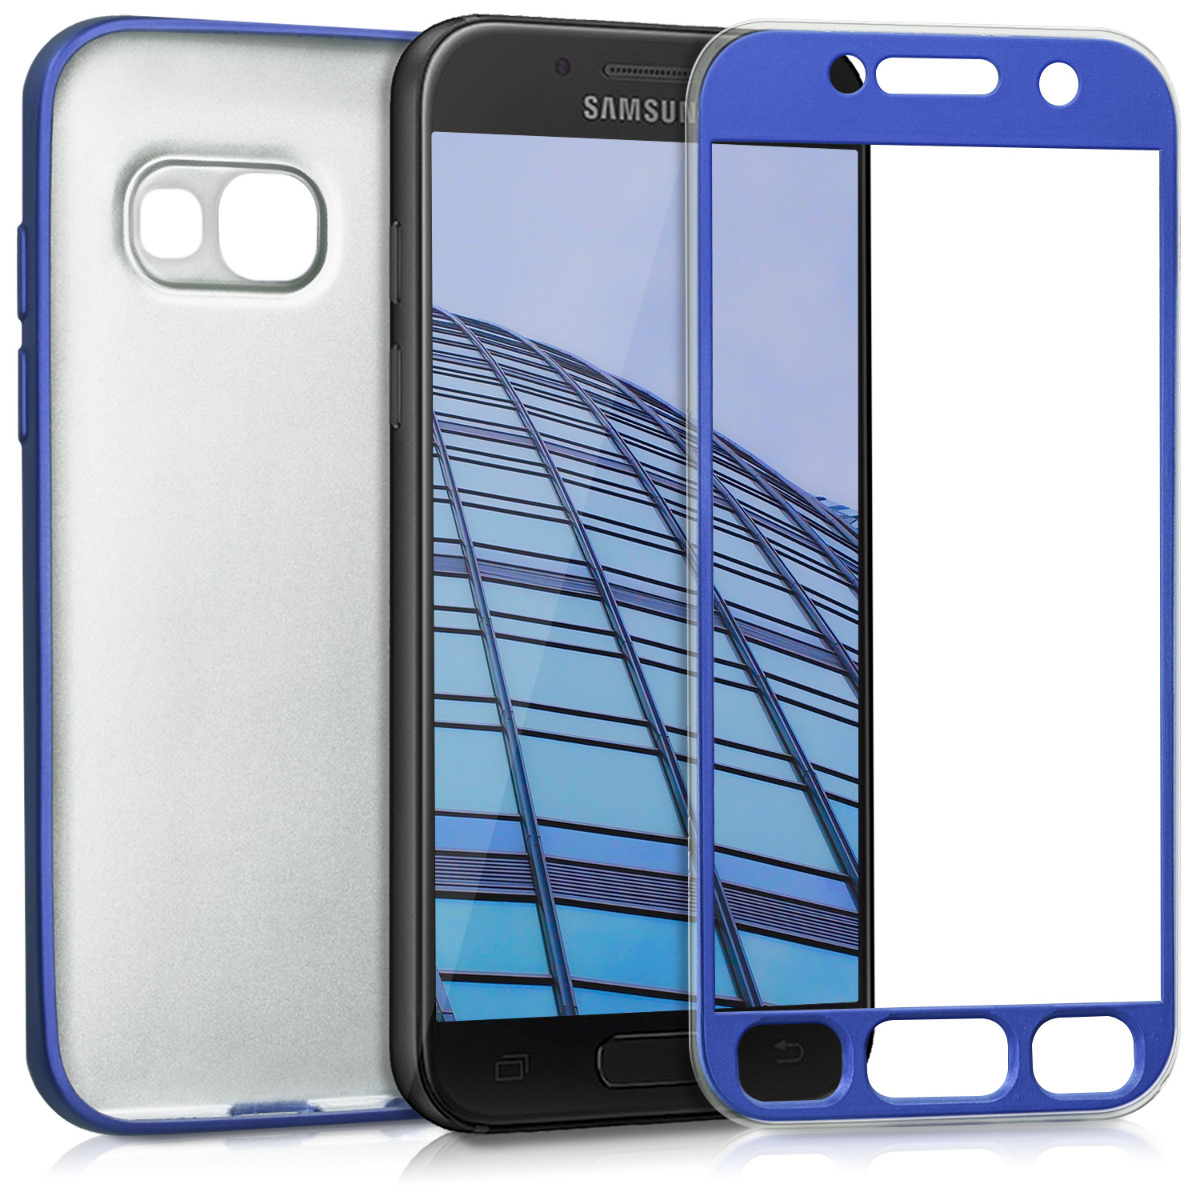 TPU-CASE-HULLE-FUR-SAMSUNG-GALAXY-A3-2017-HANDY-SCHUTZHULLE-COVER-HANDYHULLE